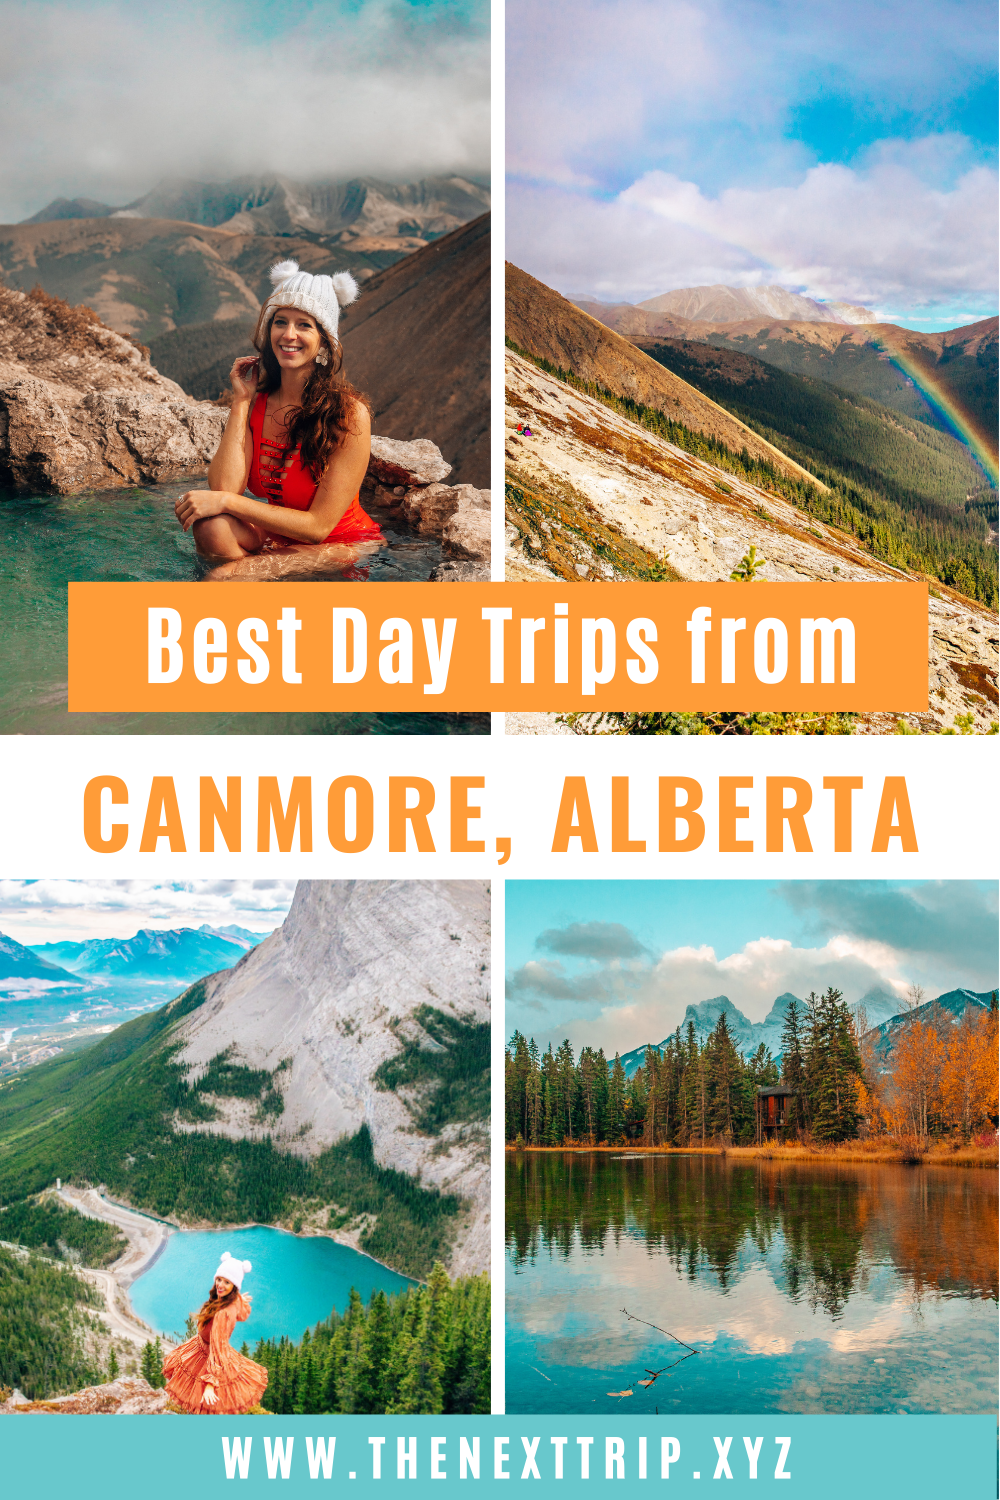 Best Things to Do in Canmore in Fall and the ultimate guide to Canmore. Hike Ha Ling Peak, enjoy the view from East End of Rundle, go biking, take photos of the three sisters, and go on incredible day trips from Canmore. Hike to the secret Mist Mountain hot springs in Kananaskis, watch the sunrise at Moraine Lake, visit Lake Louise, spot grizzly bears at Bow Valley Parkway, and hike to Johnston Canyon. |Canmore Alberta | Canada Travel | Rocky Mountain Travel | Canmore Hikes | Banff National Park | Lake Louise | Moraine Lake | Alberta Travel